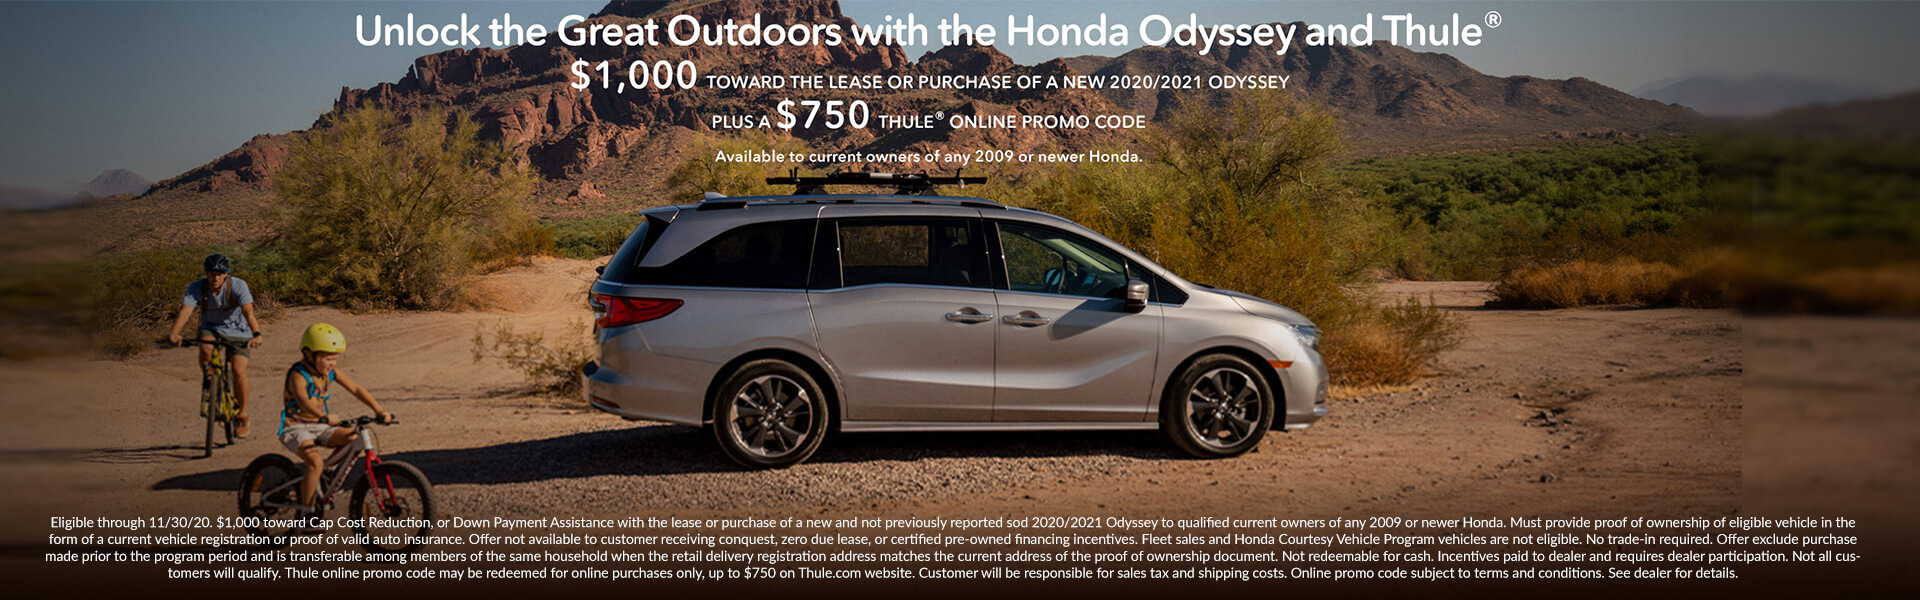 Unlock the Great Outdoors with The Honda Odyssey and Thule